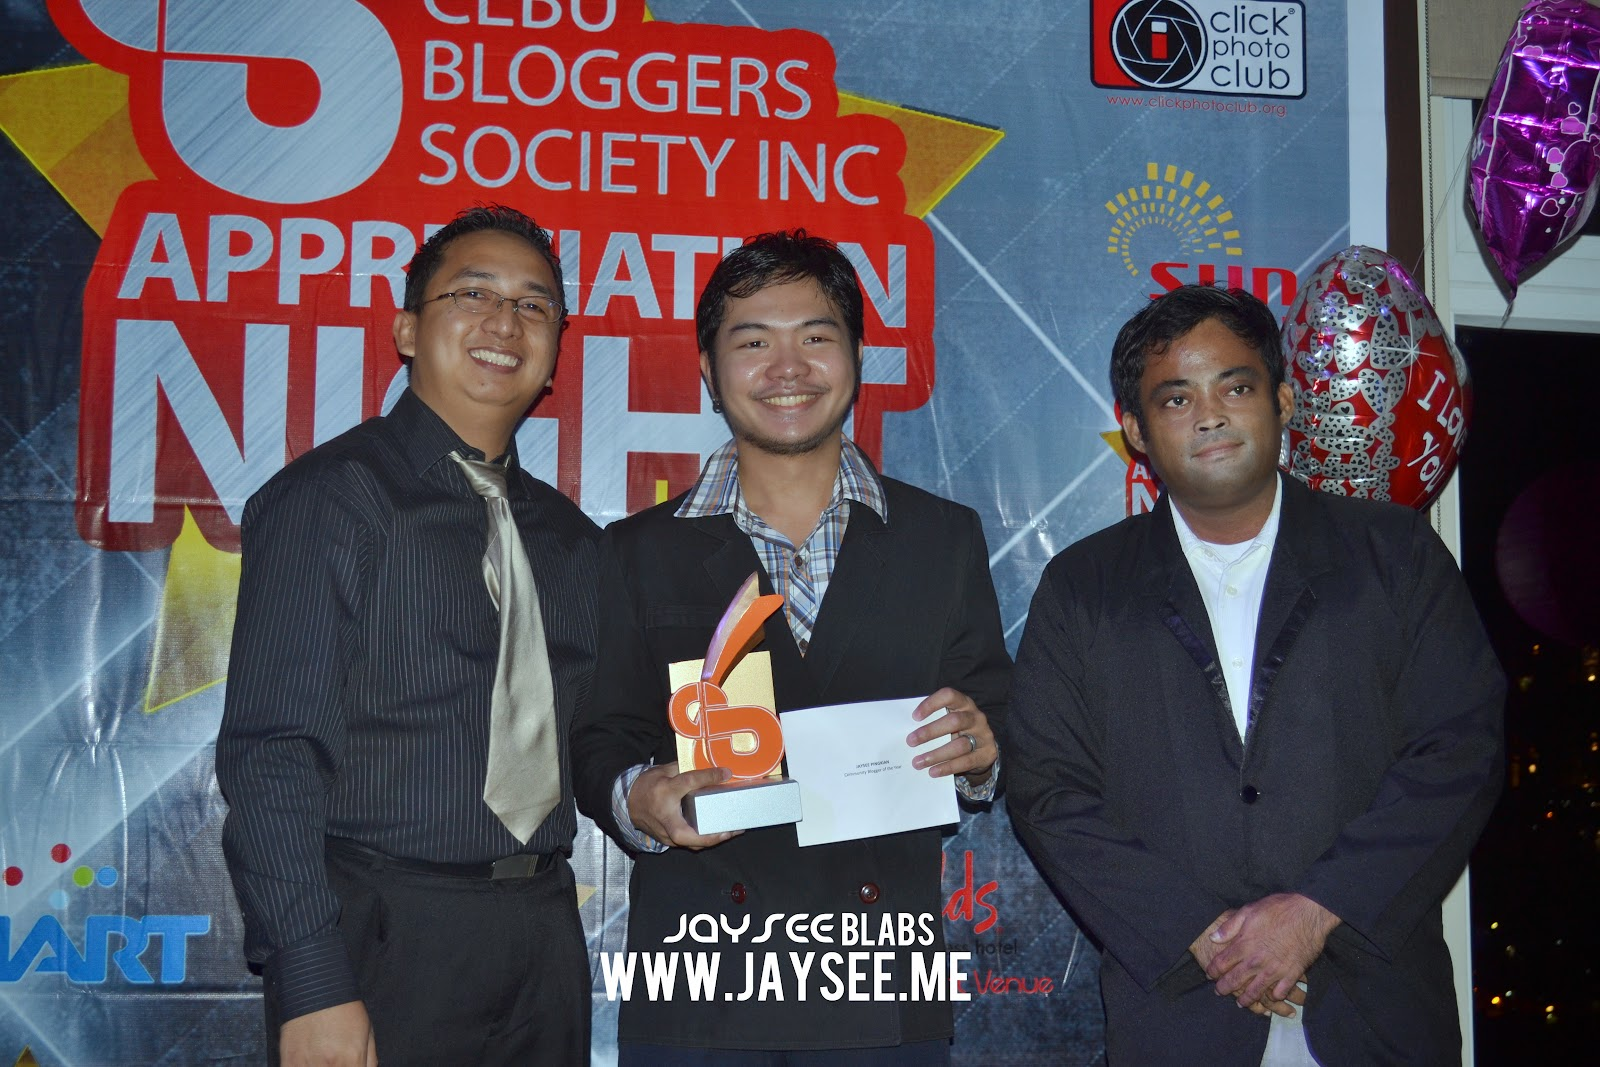 jaysee pingkian jayseeblabs receiving a recognition from the President Ruben Licera and VP Bjorn Bernales of CBSi.